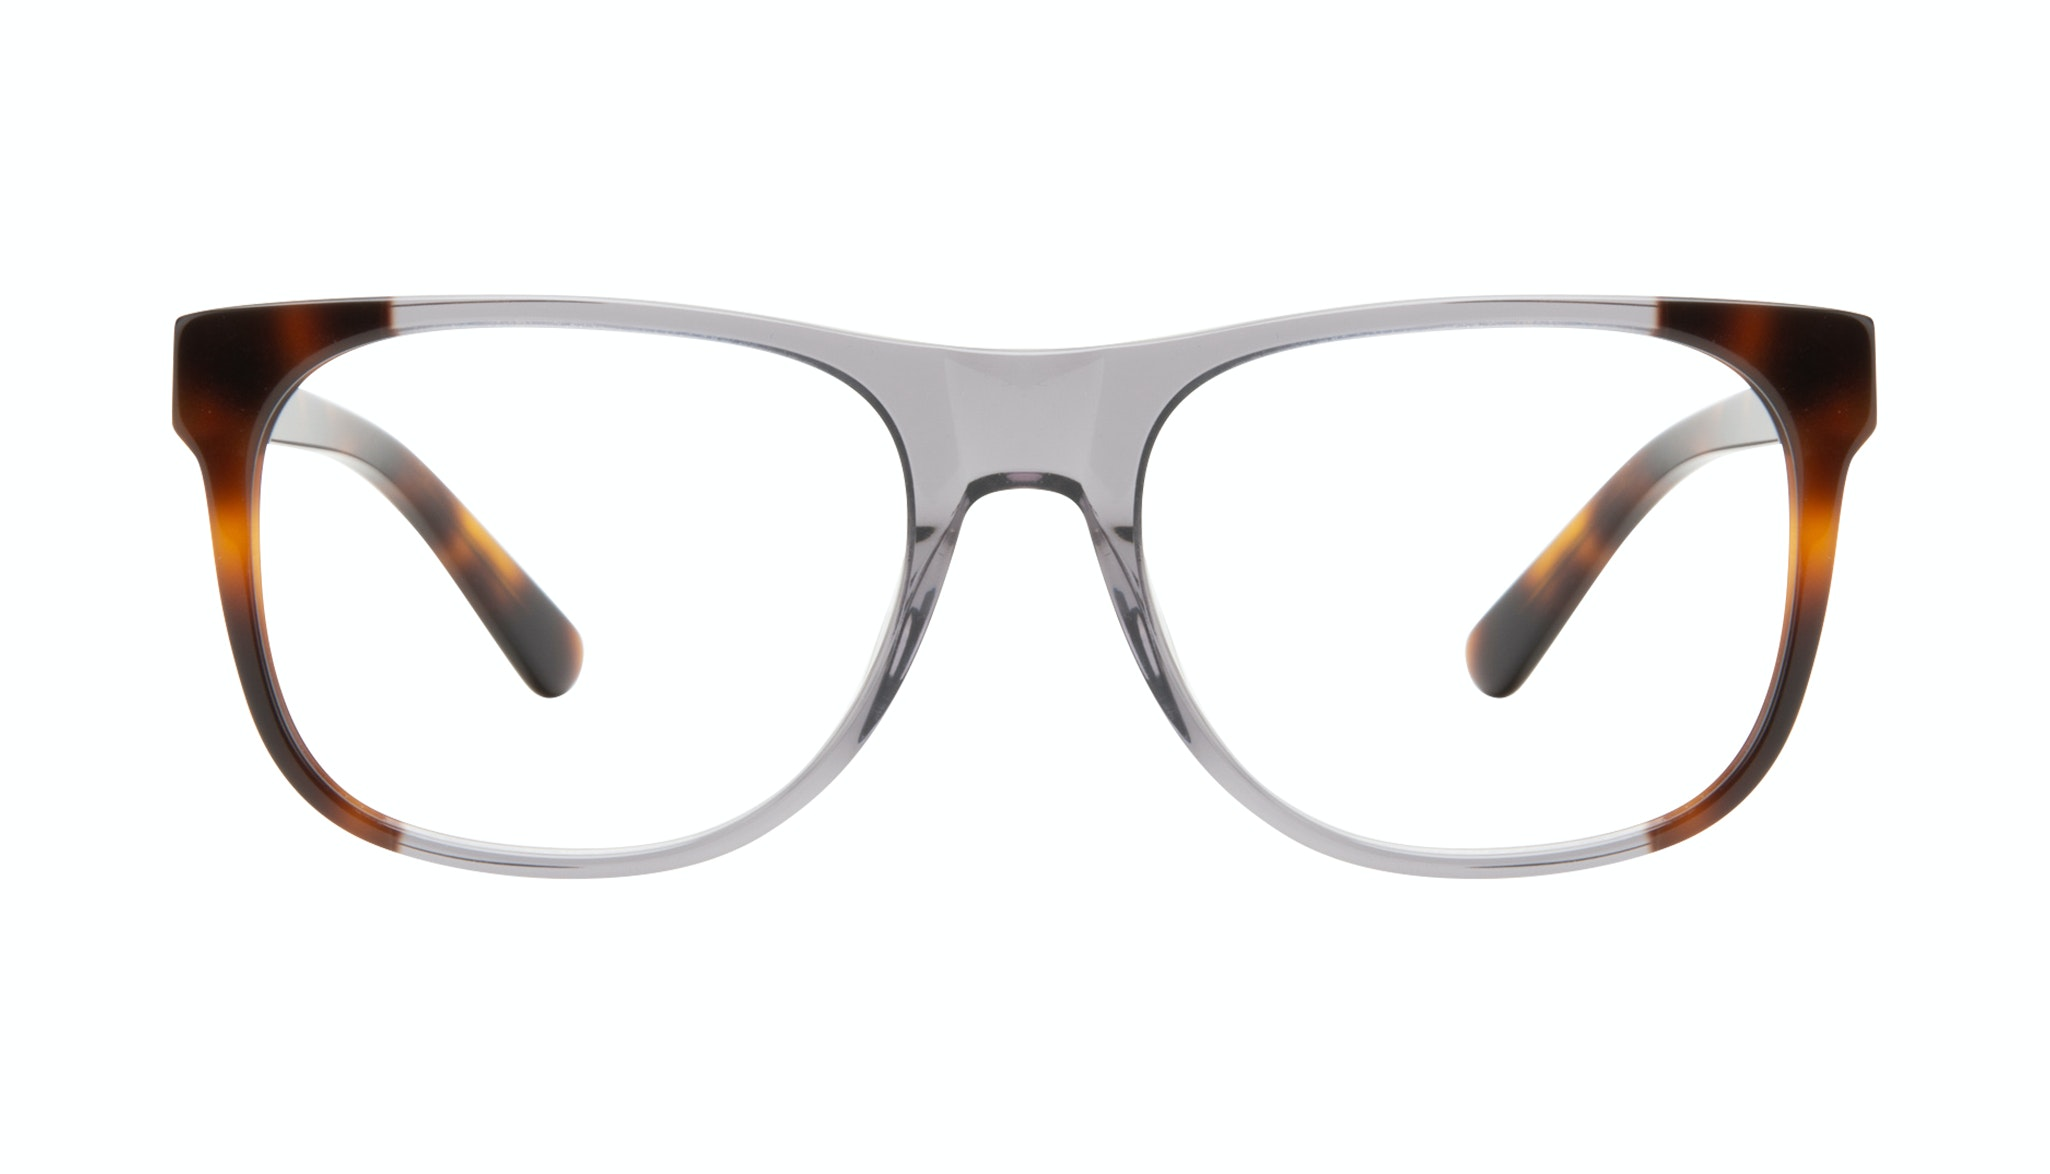 Affordable Fashion Glasses Square Eyeglasses Men Make Smokey Tort